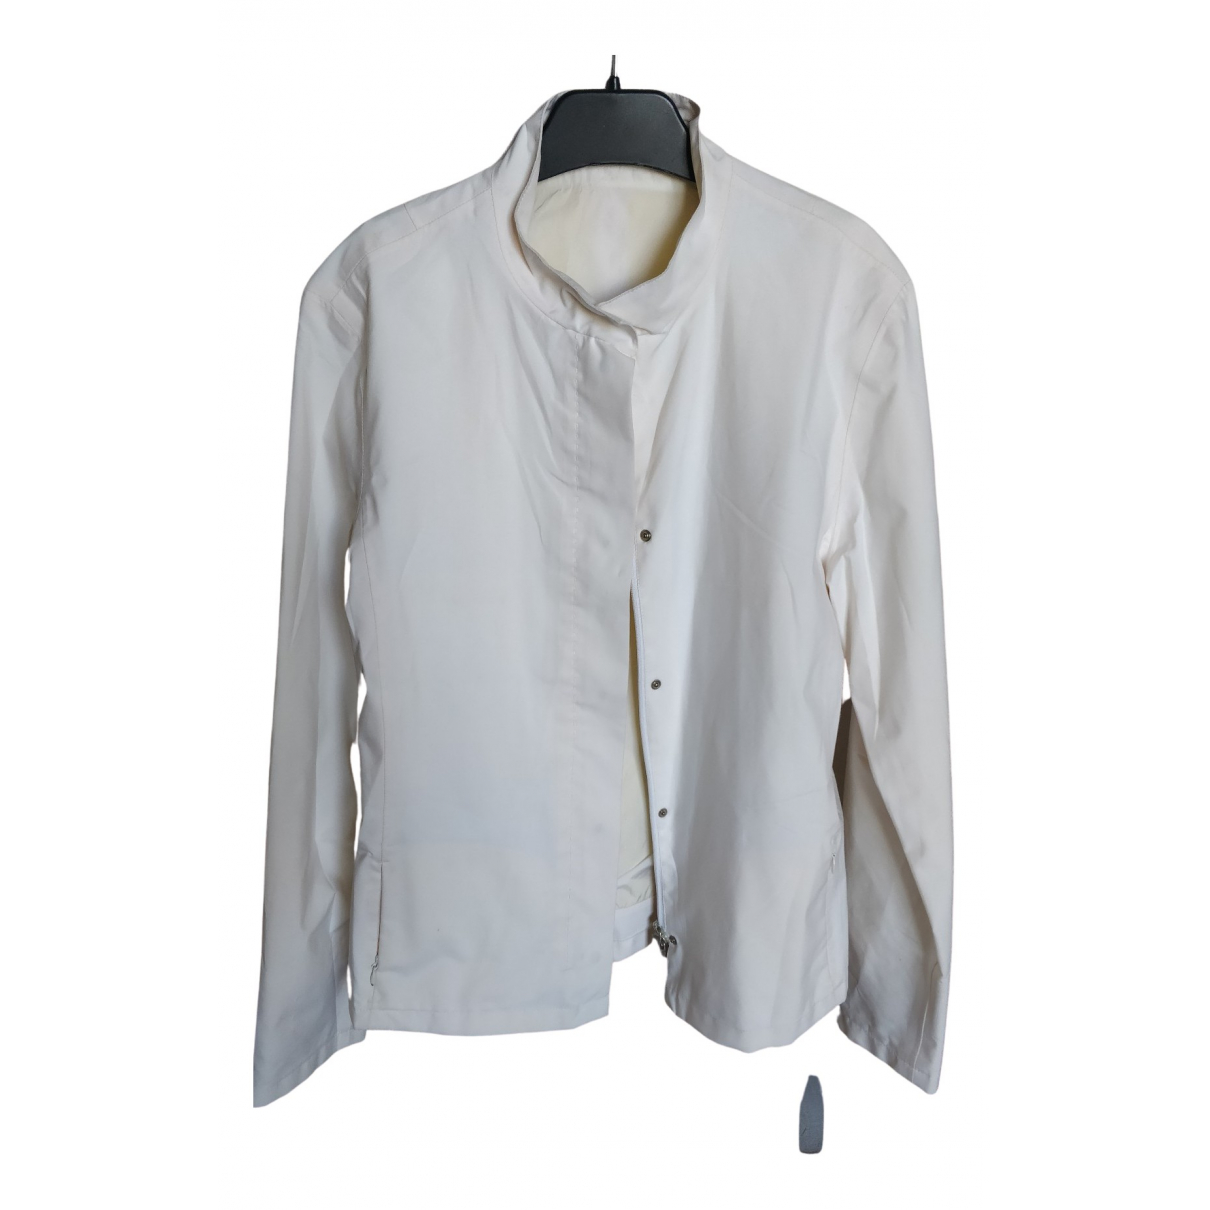 Max Mara s N White jacket for Women 42 IT